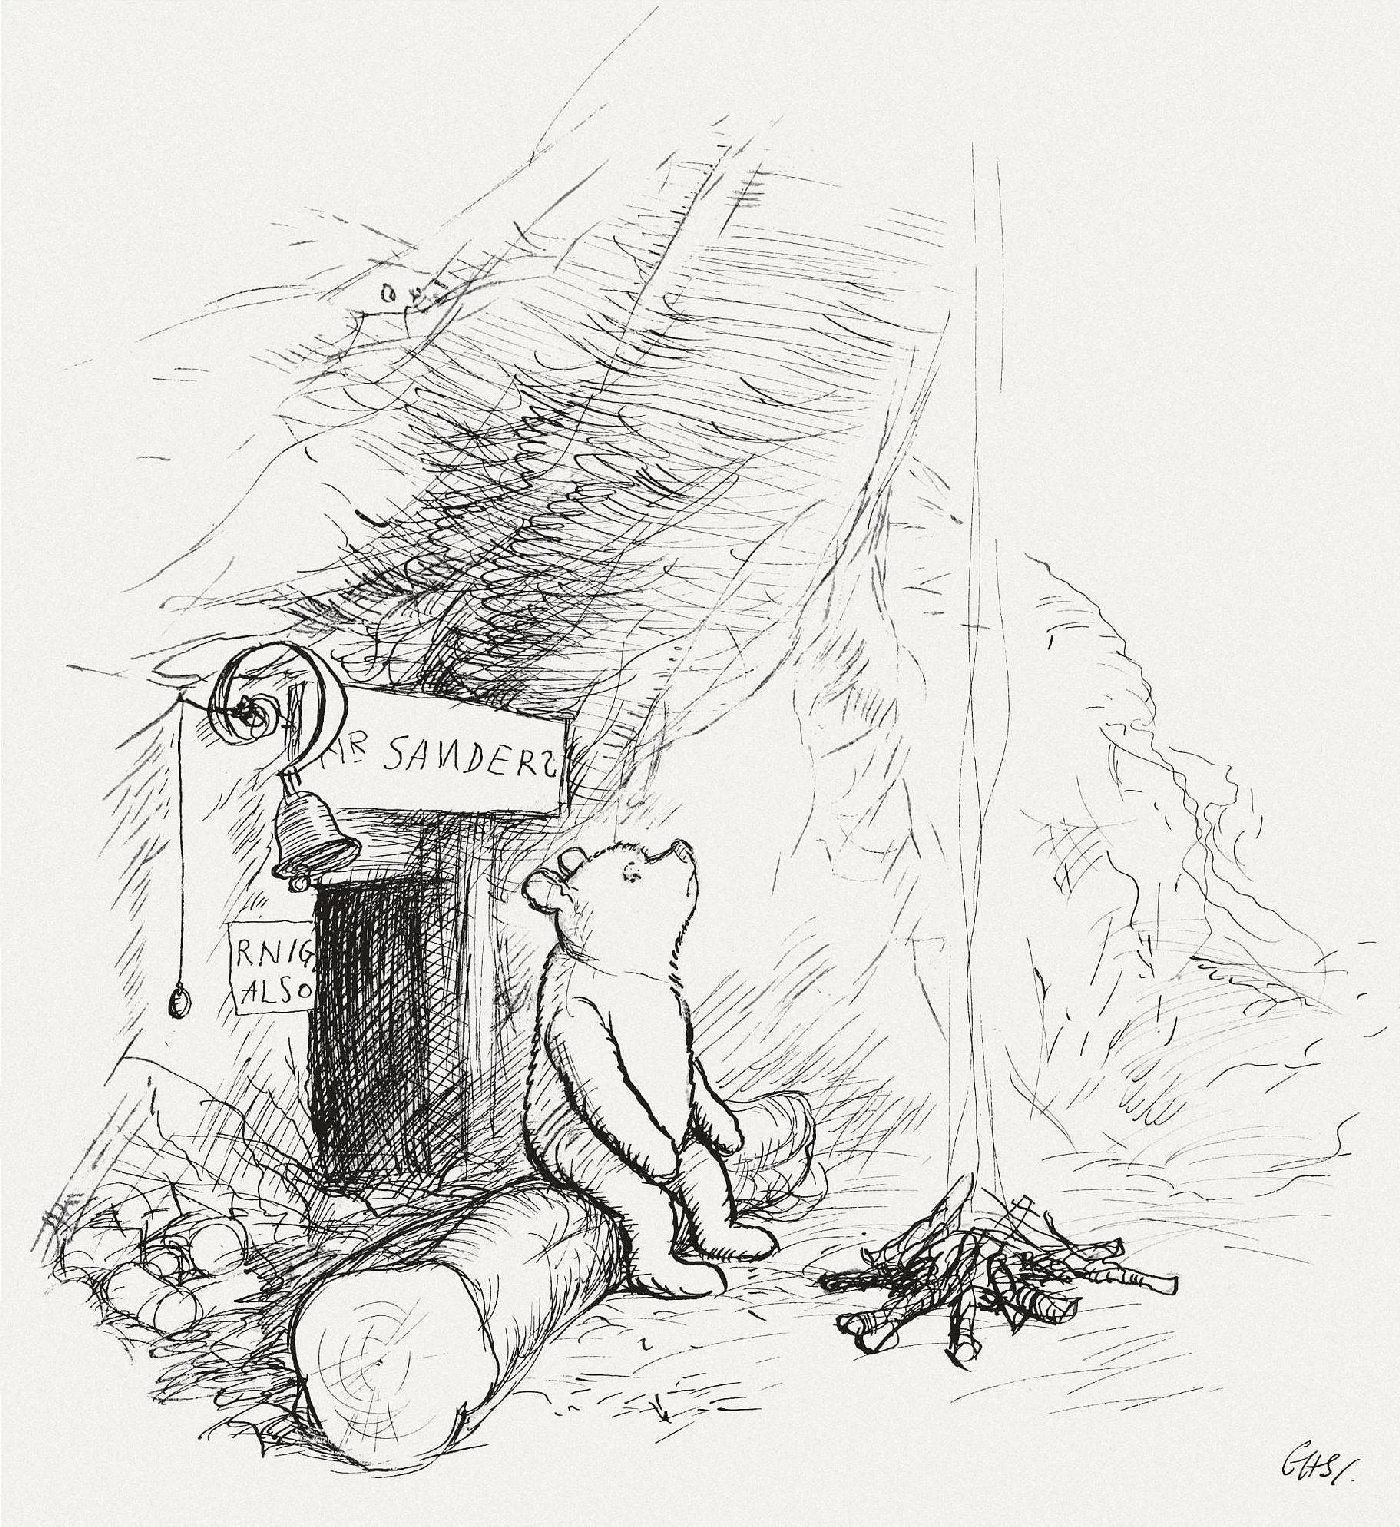 Winnie the Pooh original version 1926, Wikipedia